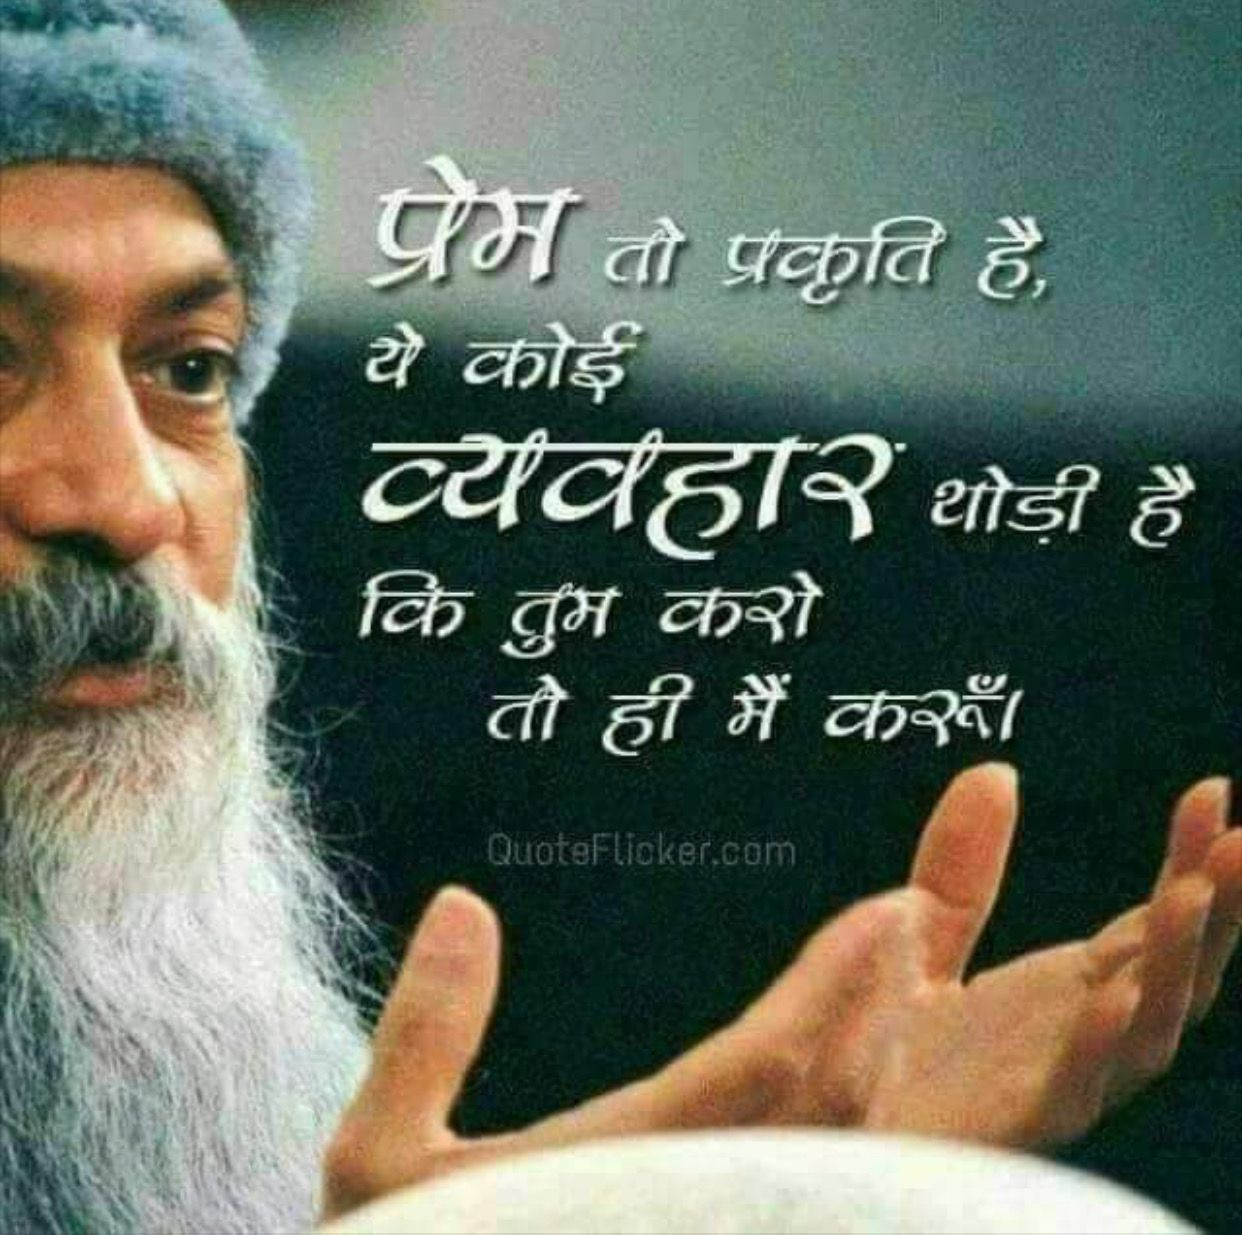 Love S S Osho Quotes Love Osho Quotes On Life Osho Quotes